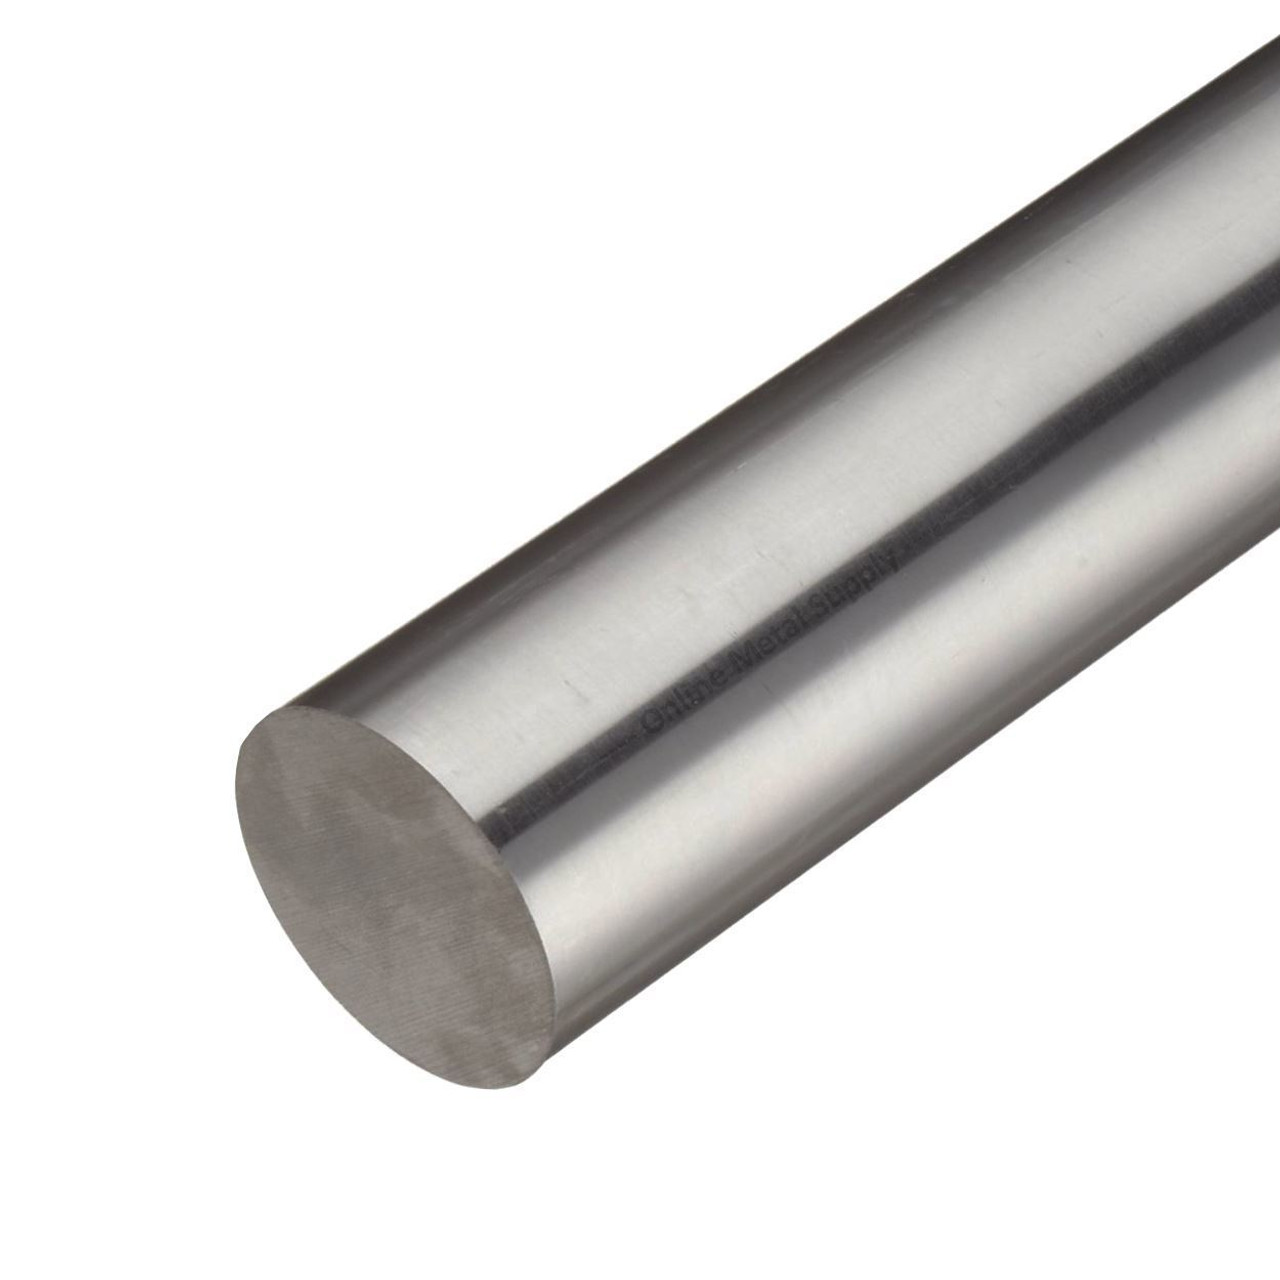 0.812 (13/16 inch) x 36 inches, 440C CF Stainless Steel Round Rod